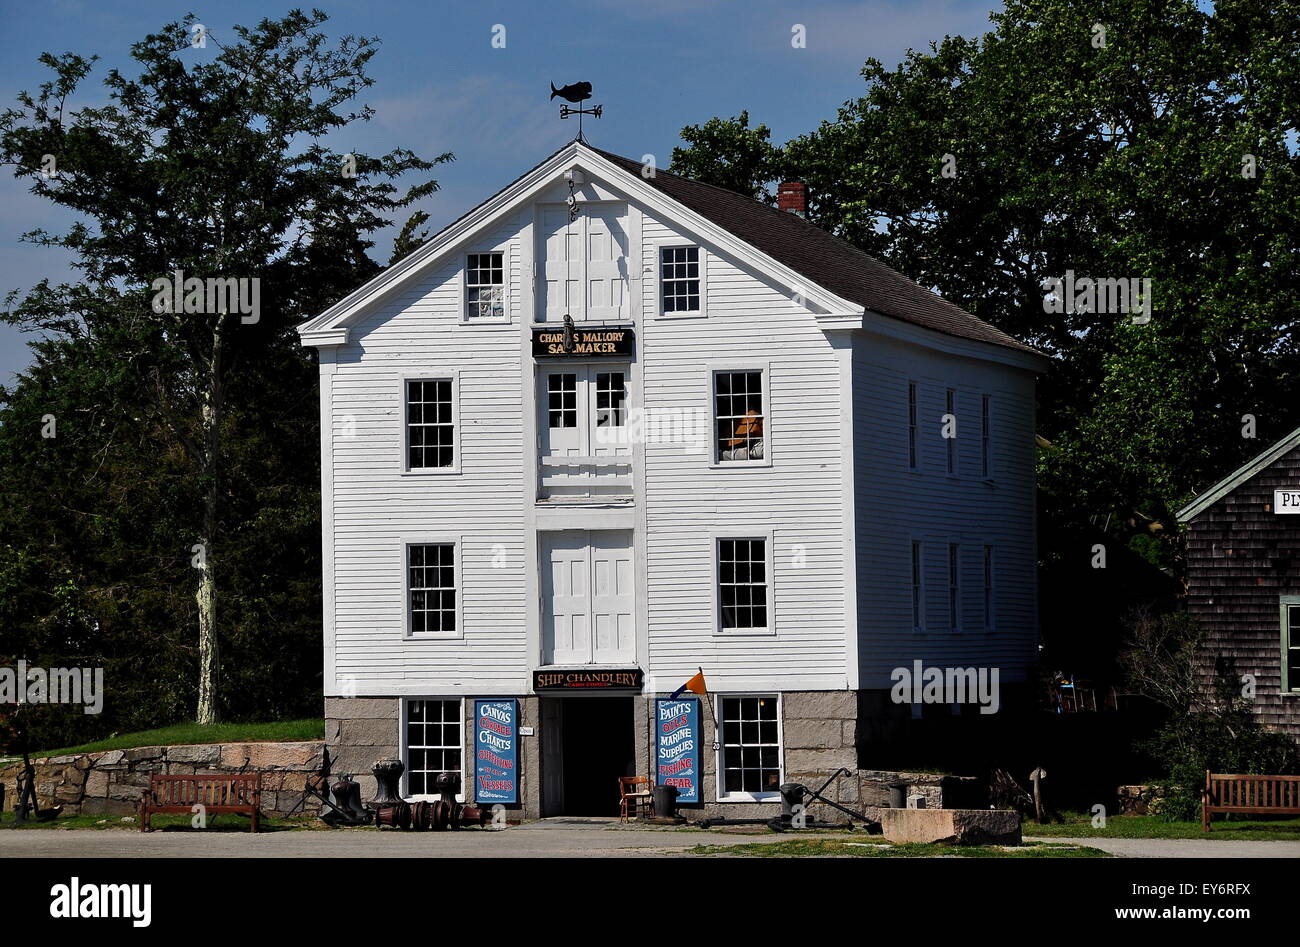 Mysic, Connecticut: Charles Mallory Ships' Candlery, Rigging Loft, and Sail Loft at Mystic Seaport Stock Photo